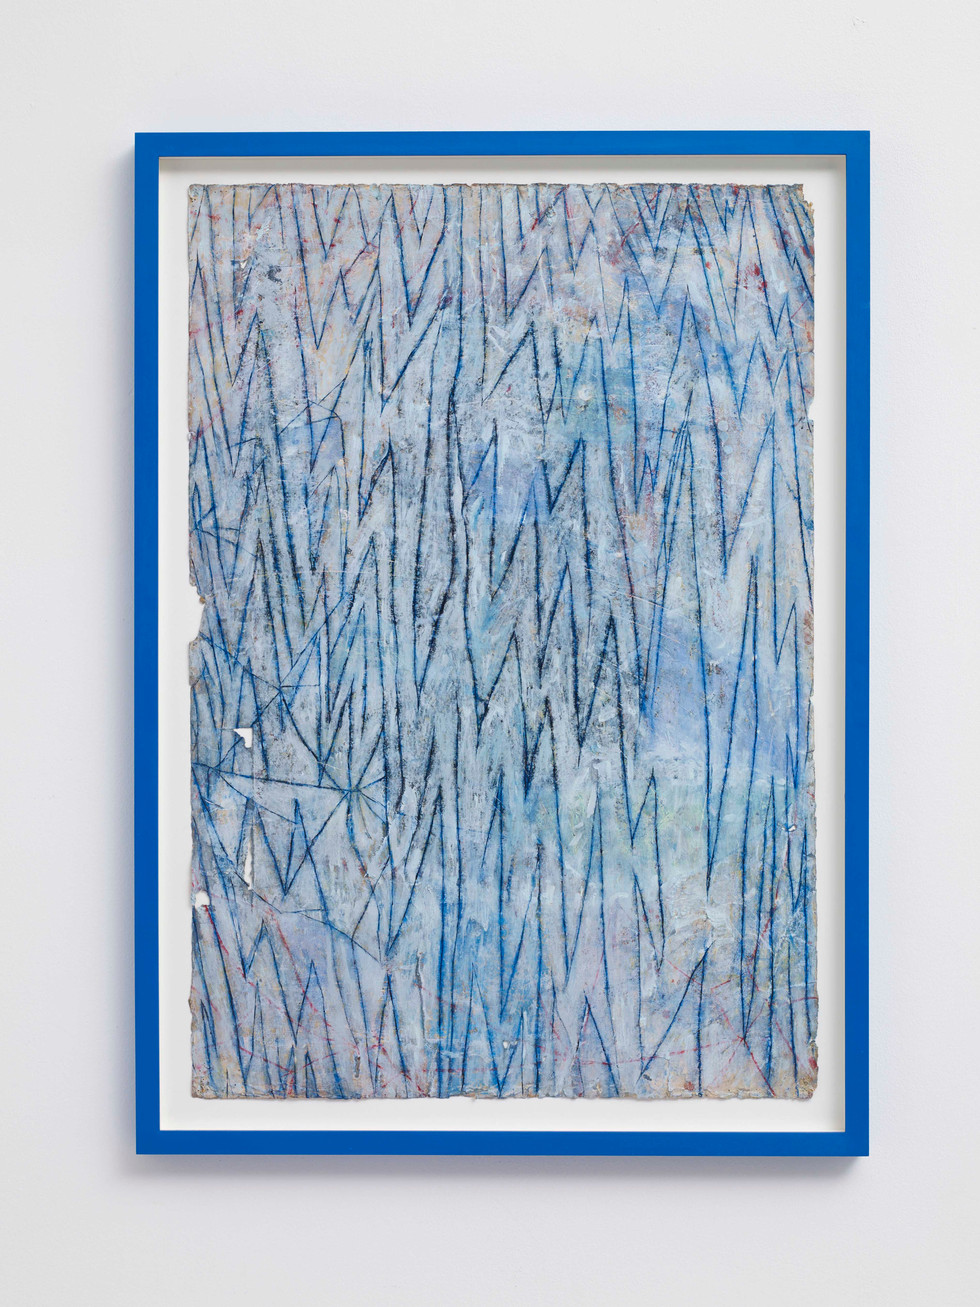 ~ night water. 2015-16. Oil paint, graphite and pastel on paper with artist frame. 87 x 61 x 4 cm